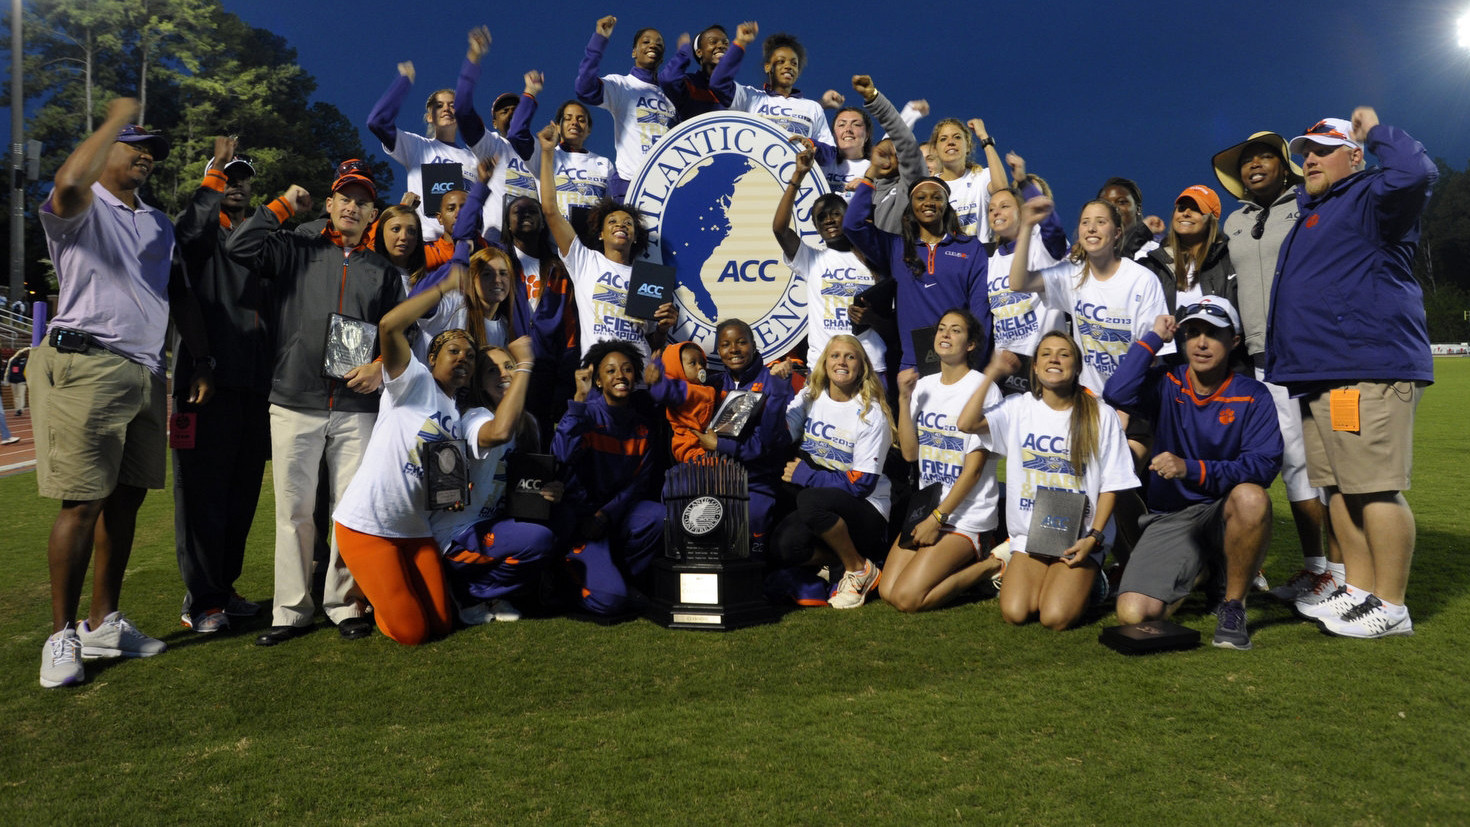 Clemson Women Claim Eighth Straight ACC Track & Field Crown in Dramatic Fashion